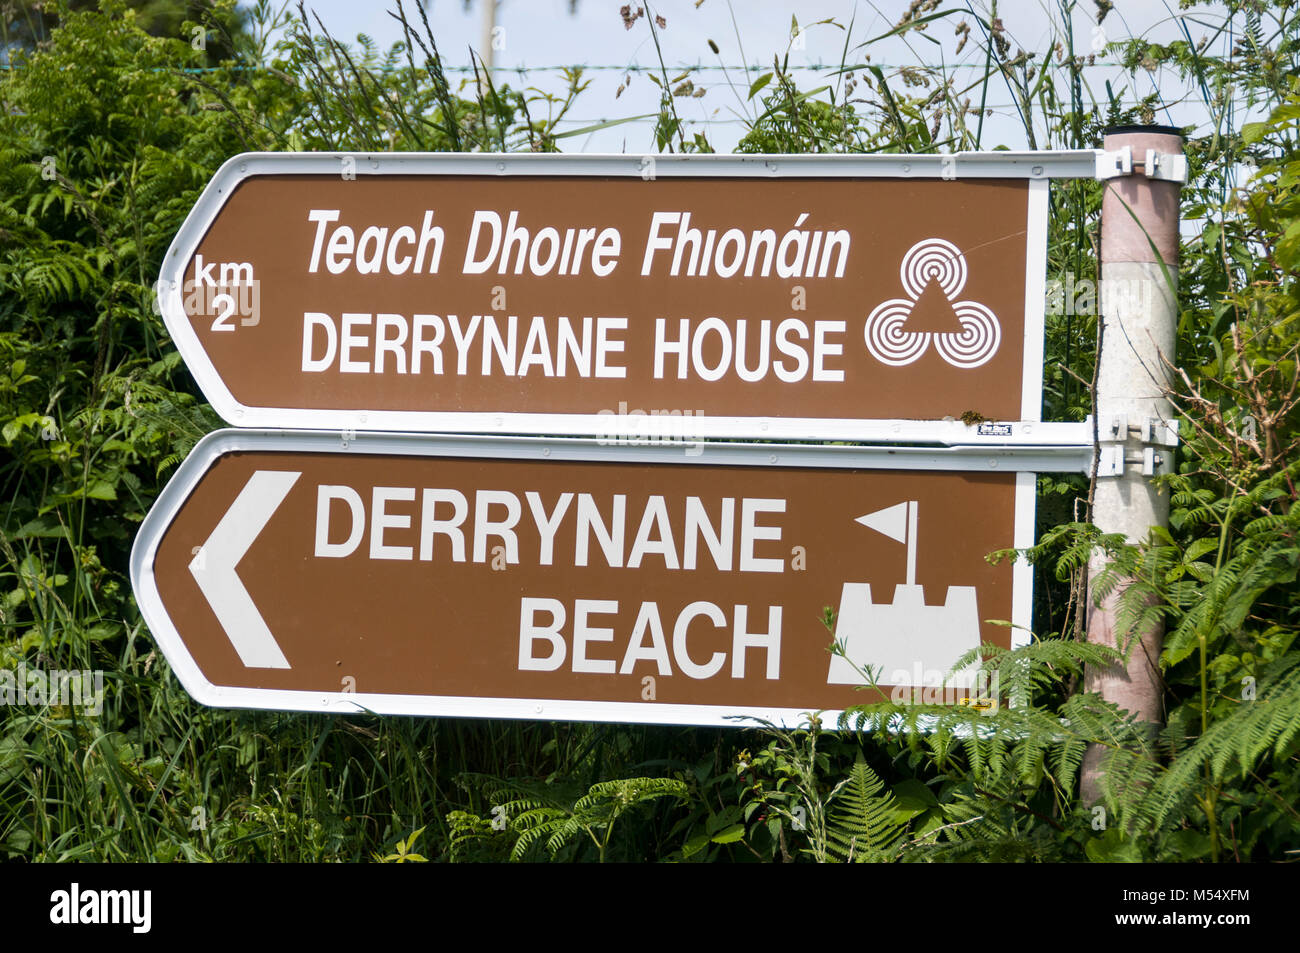 A tourist attraction road sign on the Kerry Ring in Southern Ireland. - Stock Image